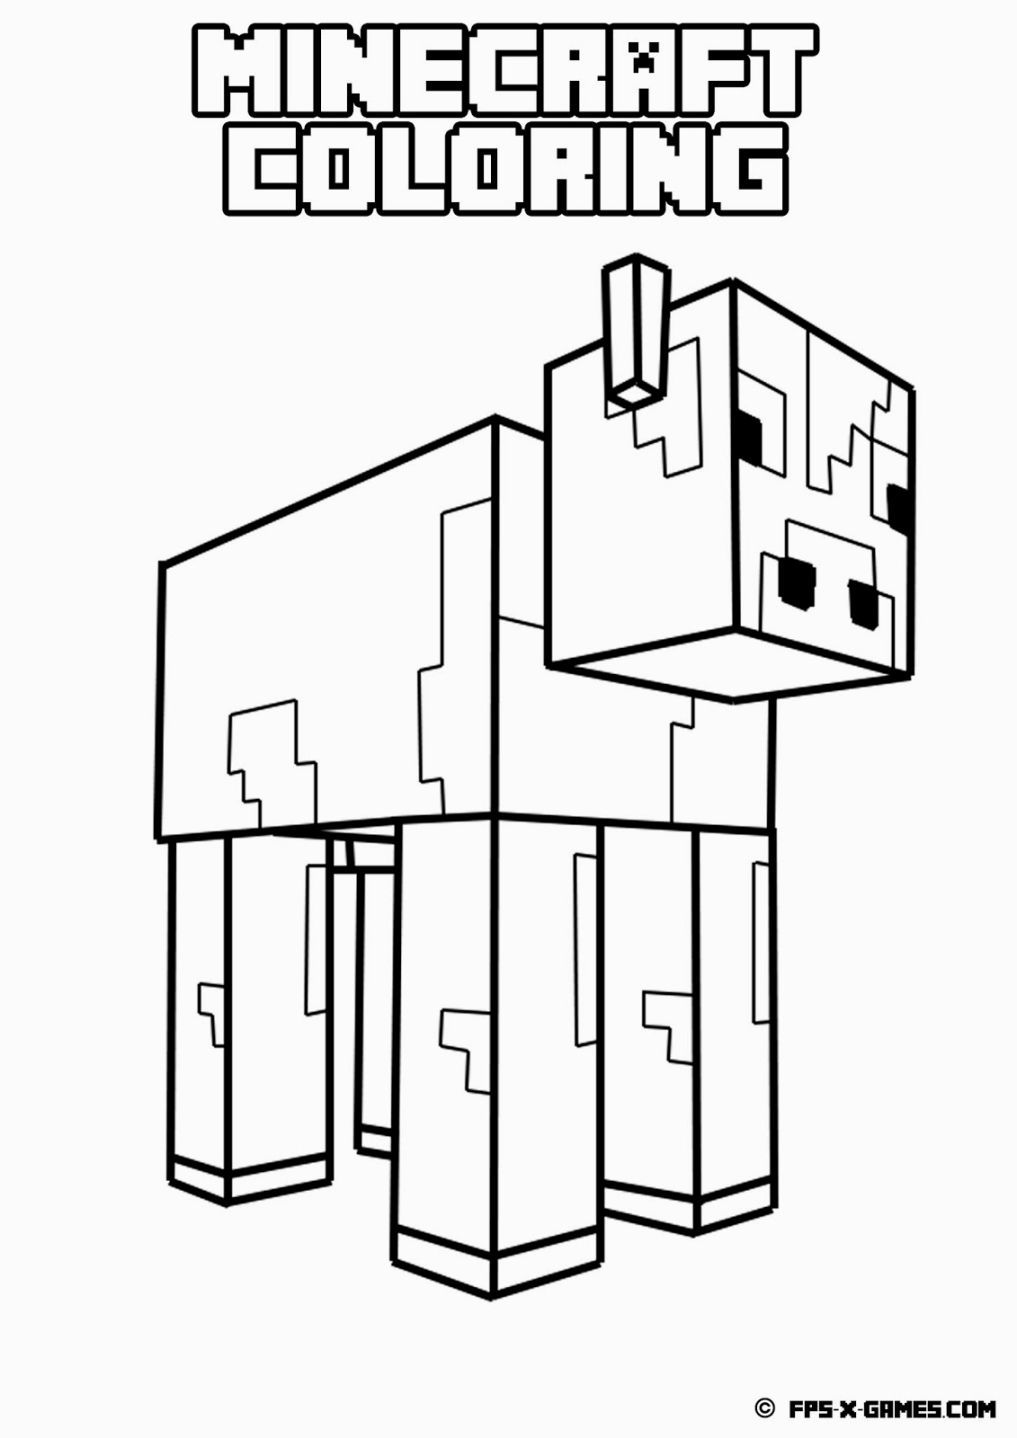 Minecraft Coloring Book | Coloring Pages | Pinterest | Coloring ...